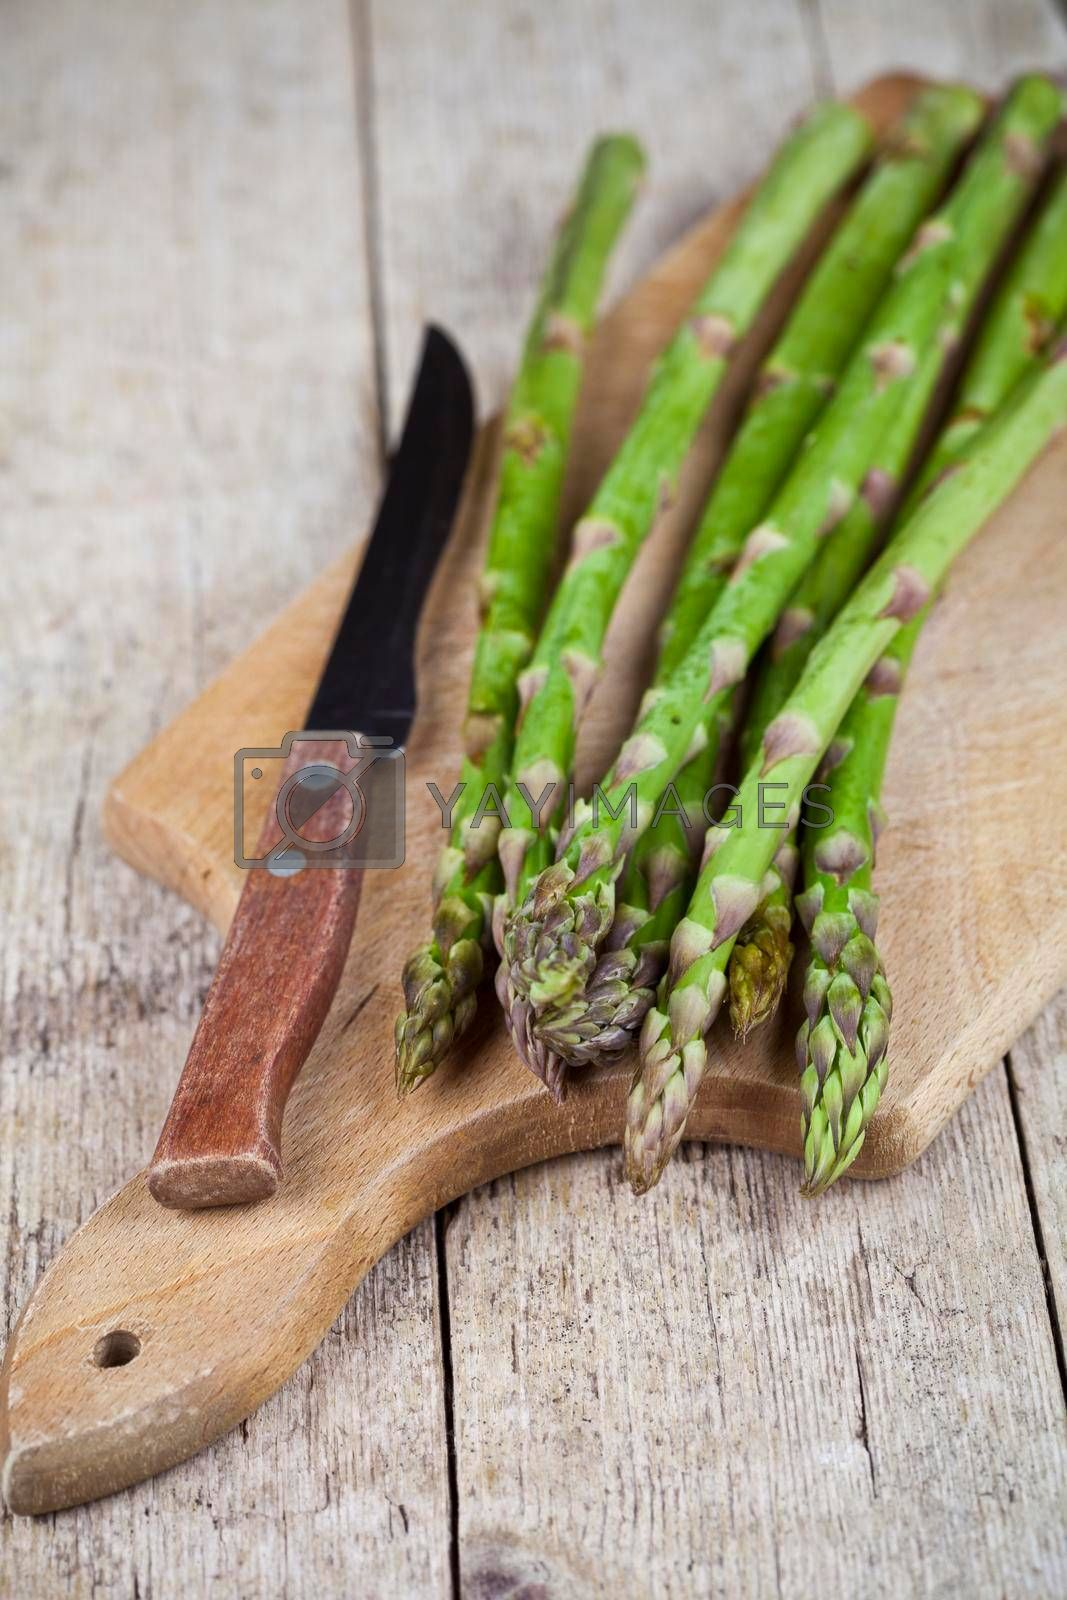 Fresh raw garden asparagus and knife closeup on cutting board on rustic wooden table background. Green spring vegetables. Edible sprouts of asparagus.